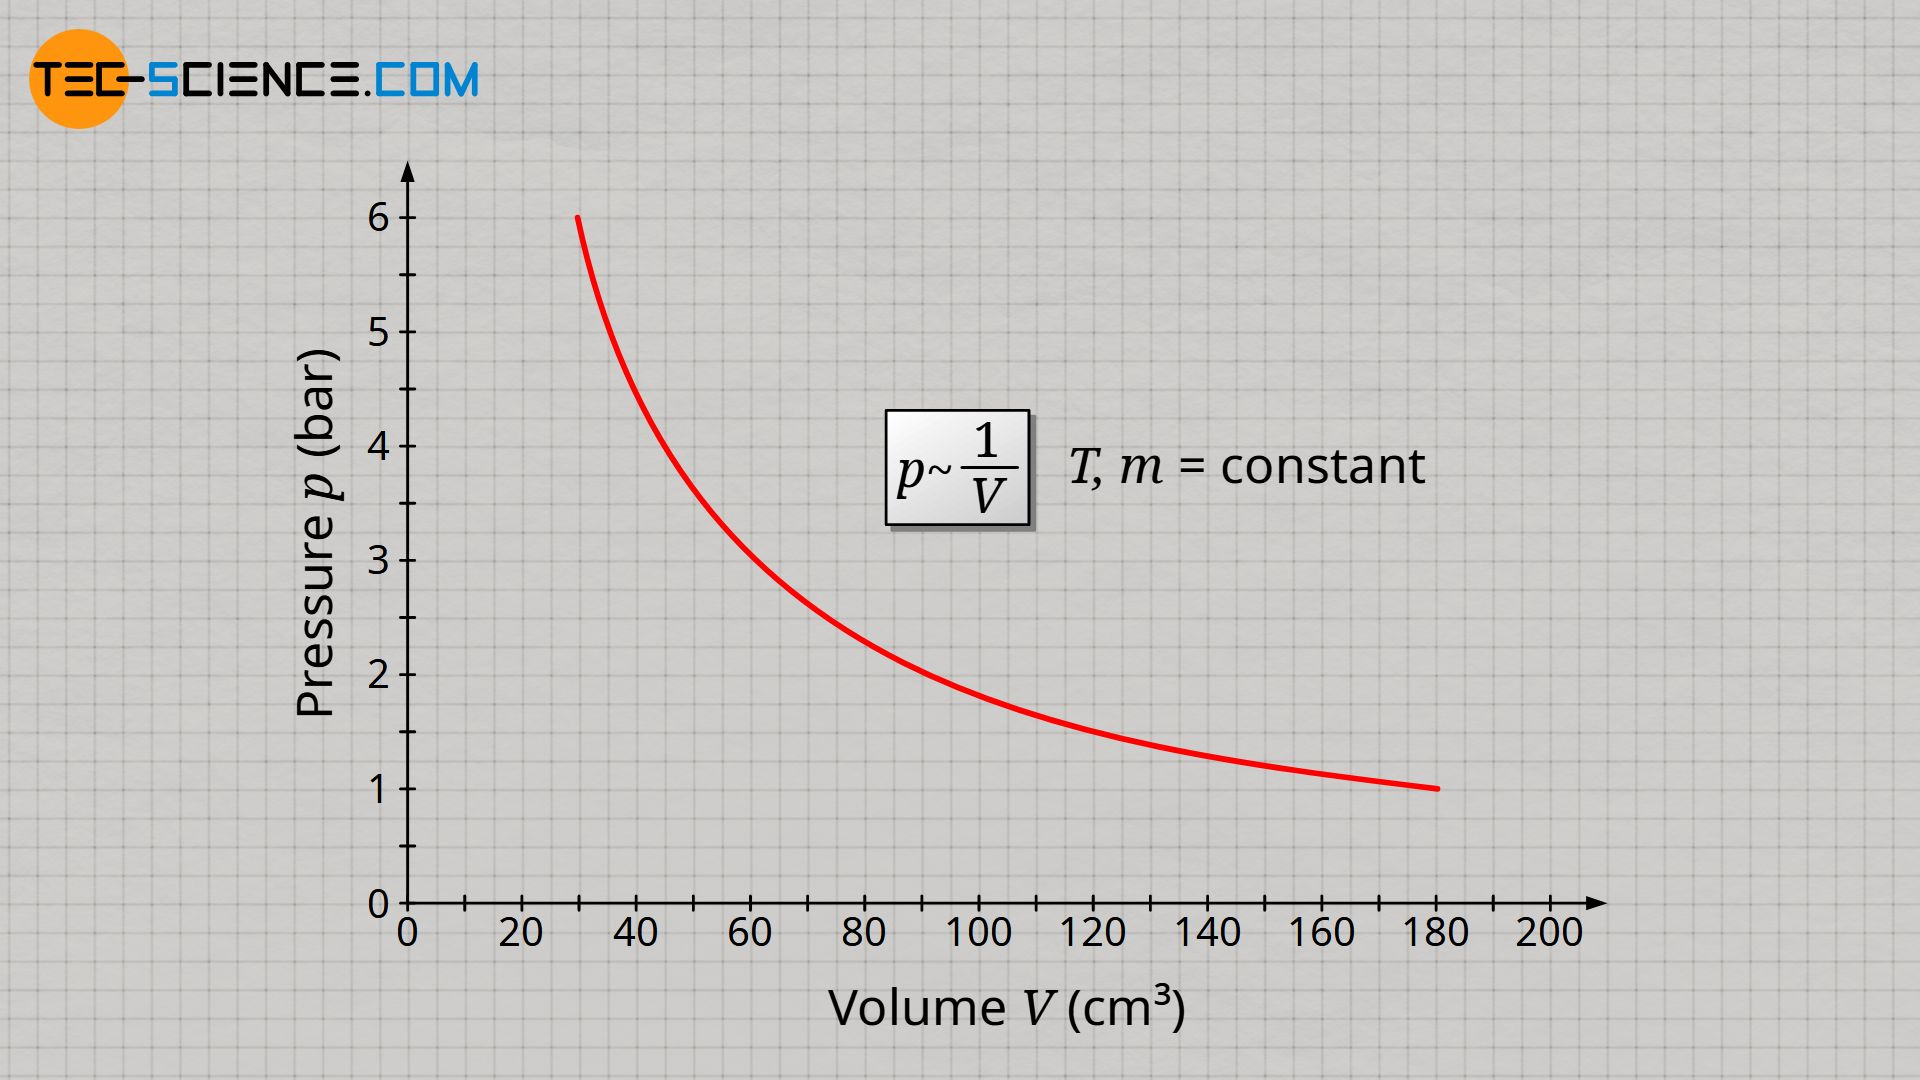 Inversely proportional relationship between gas pressure and gas volume at constant mass and temperature